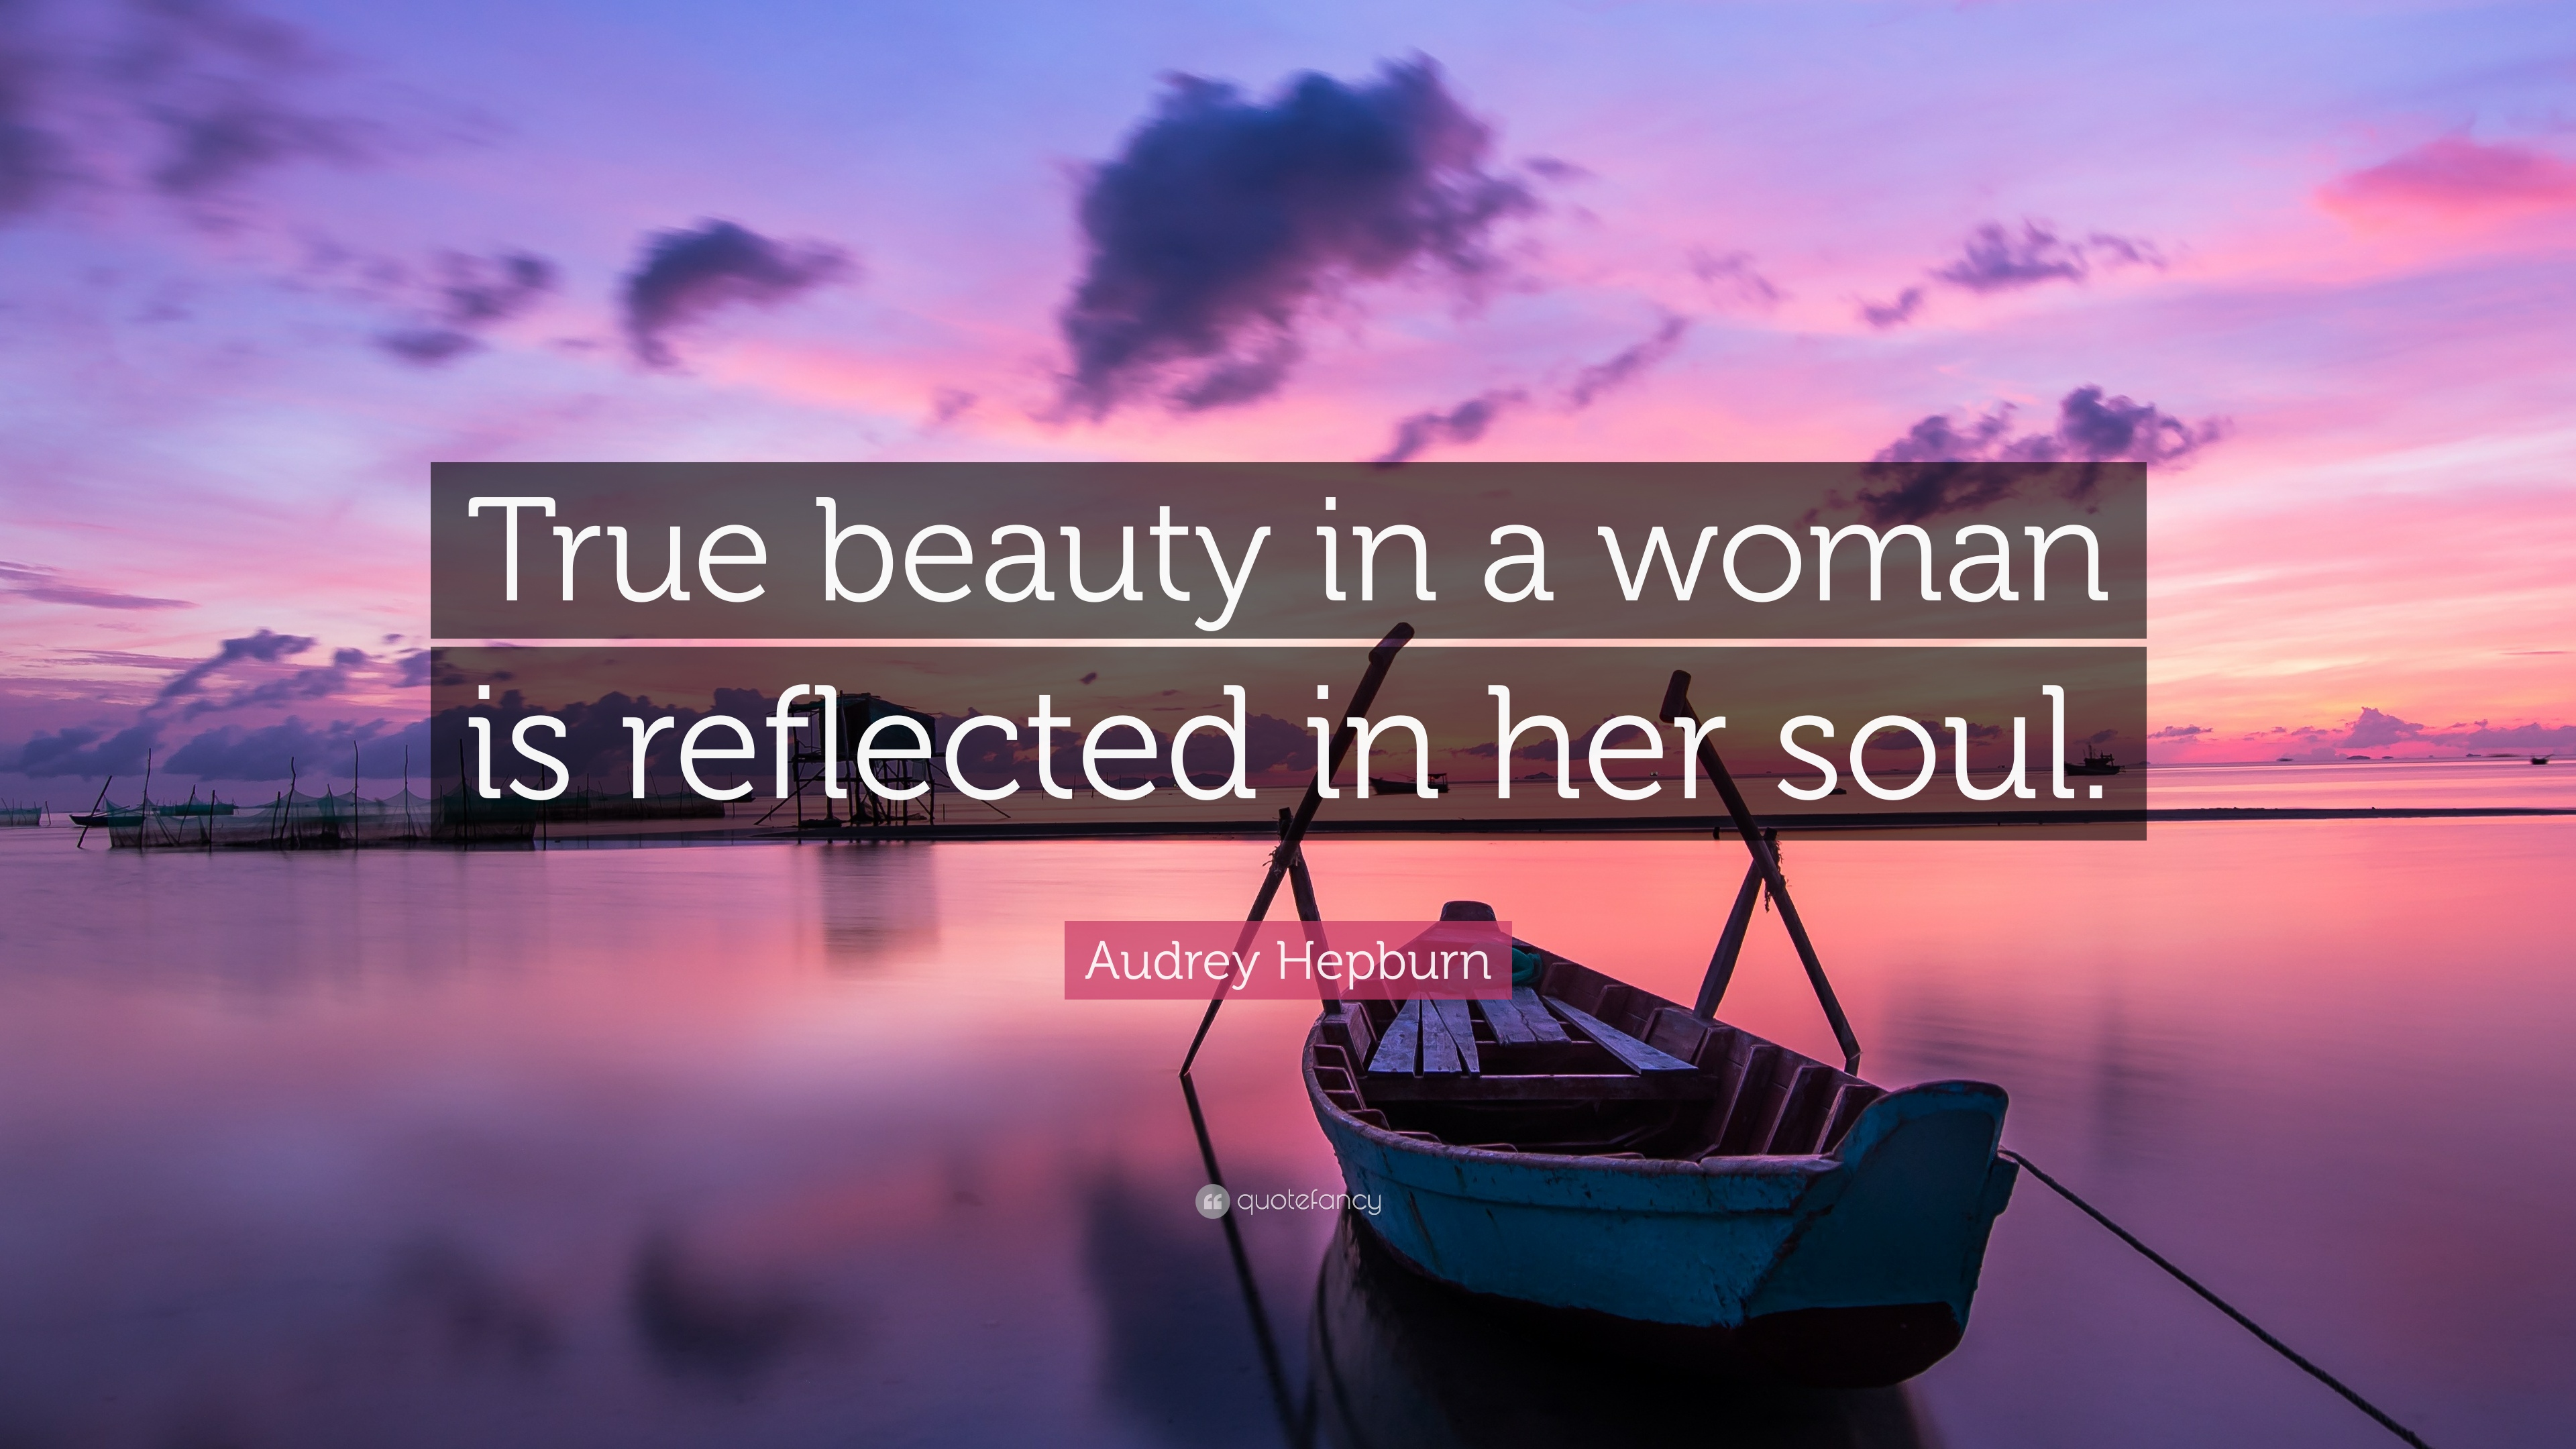 Audrey Hepburn Quote True Beauty In A Woman Is Reflected In Her Soul 12 Wallpapers Quotefancy